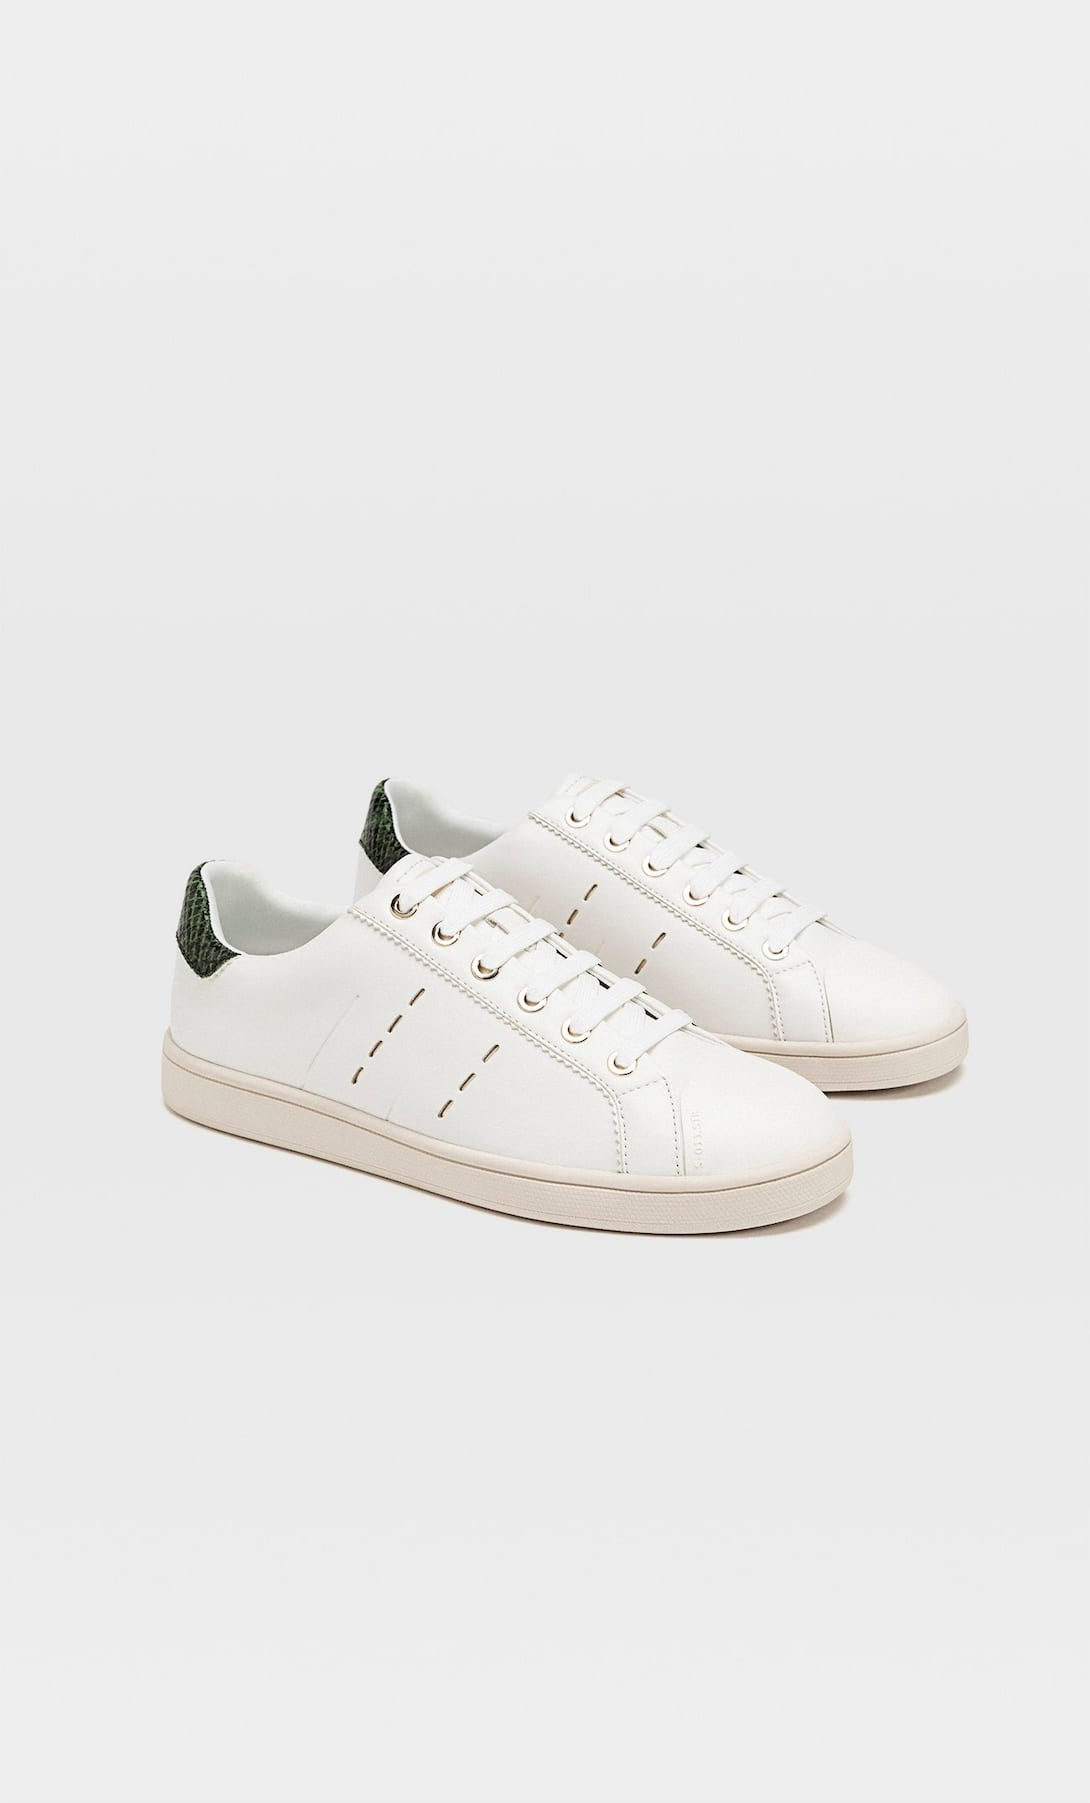 STRADIVARIUS TRAINERS WITH HEEL CAP DETAIL IN WHITE